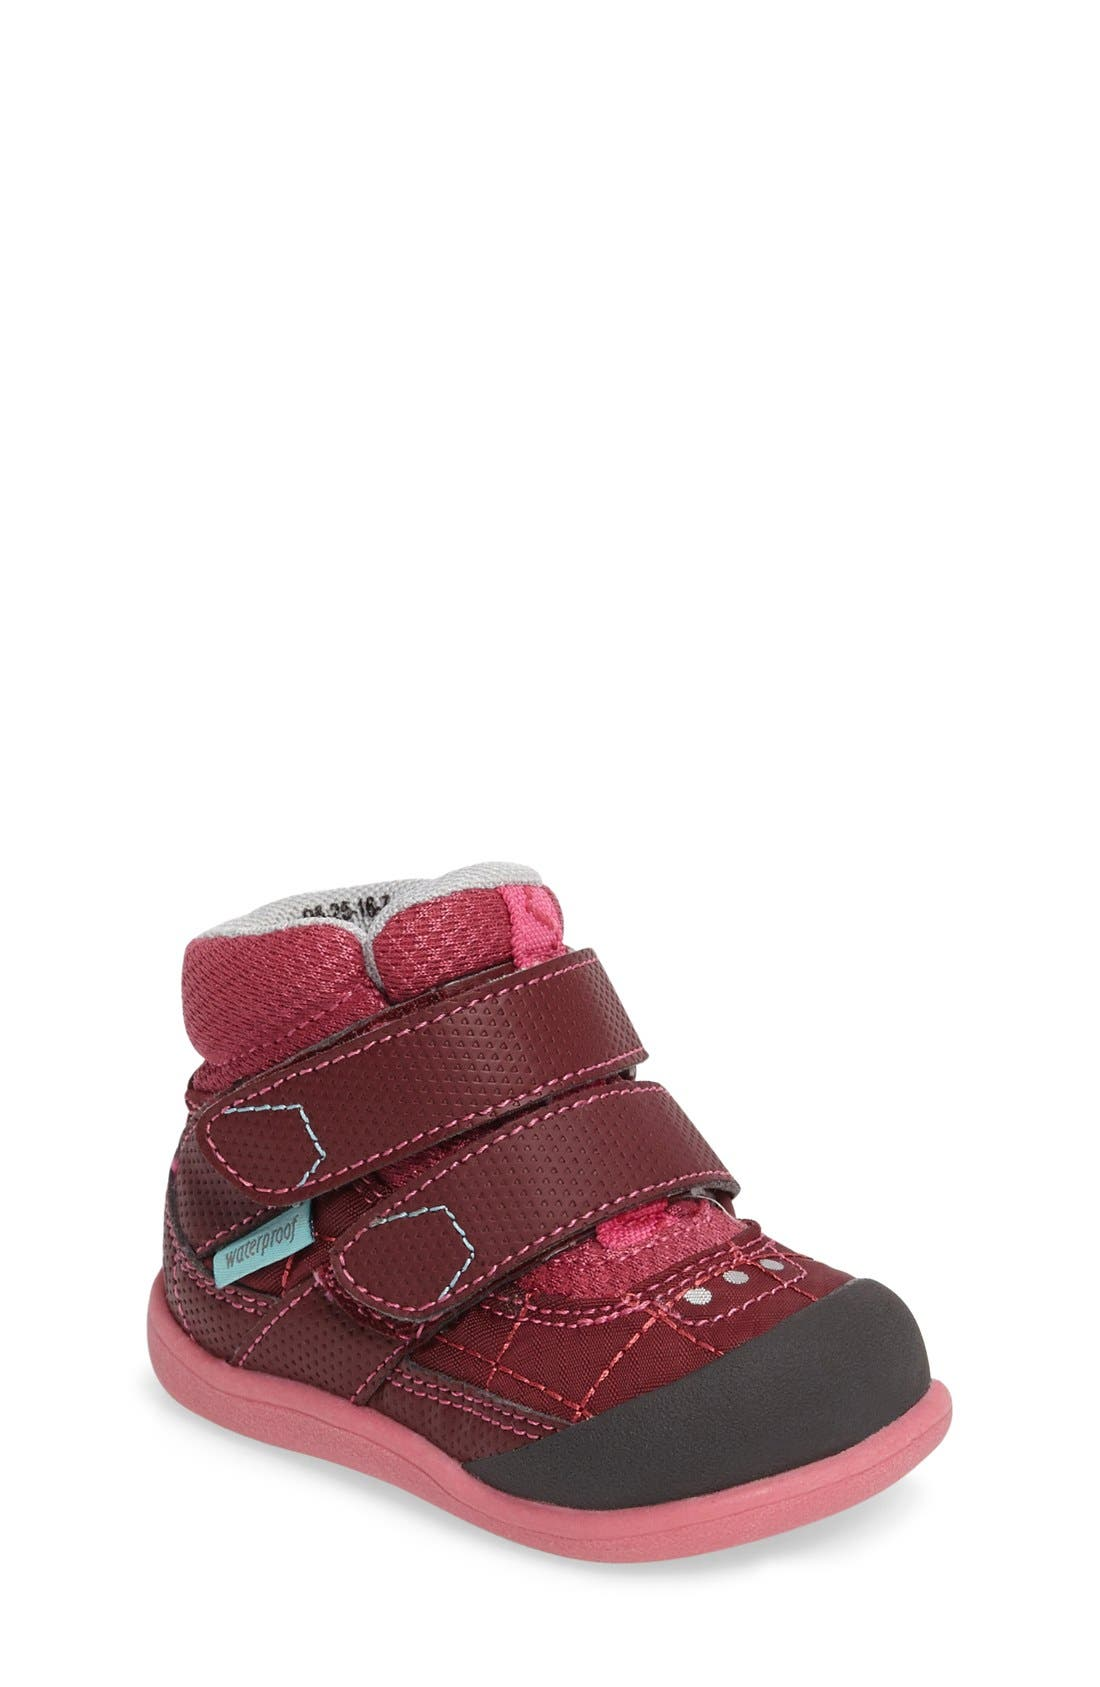 Main Image - See Kai Run Atlas Waterproof Boot (Baby, Walker & Toddler)